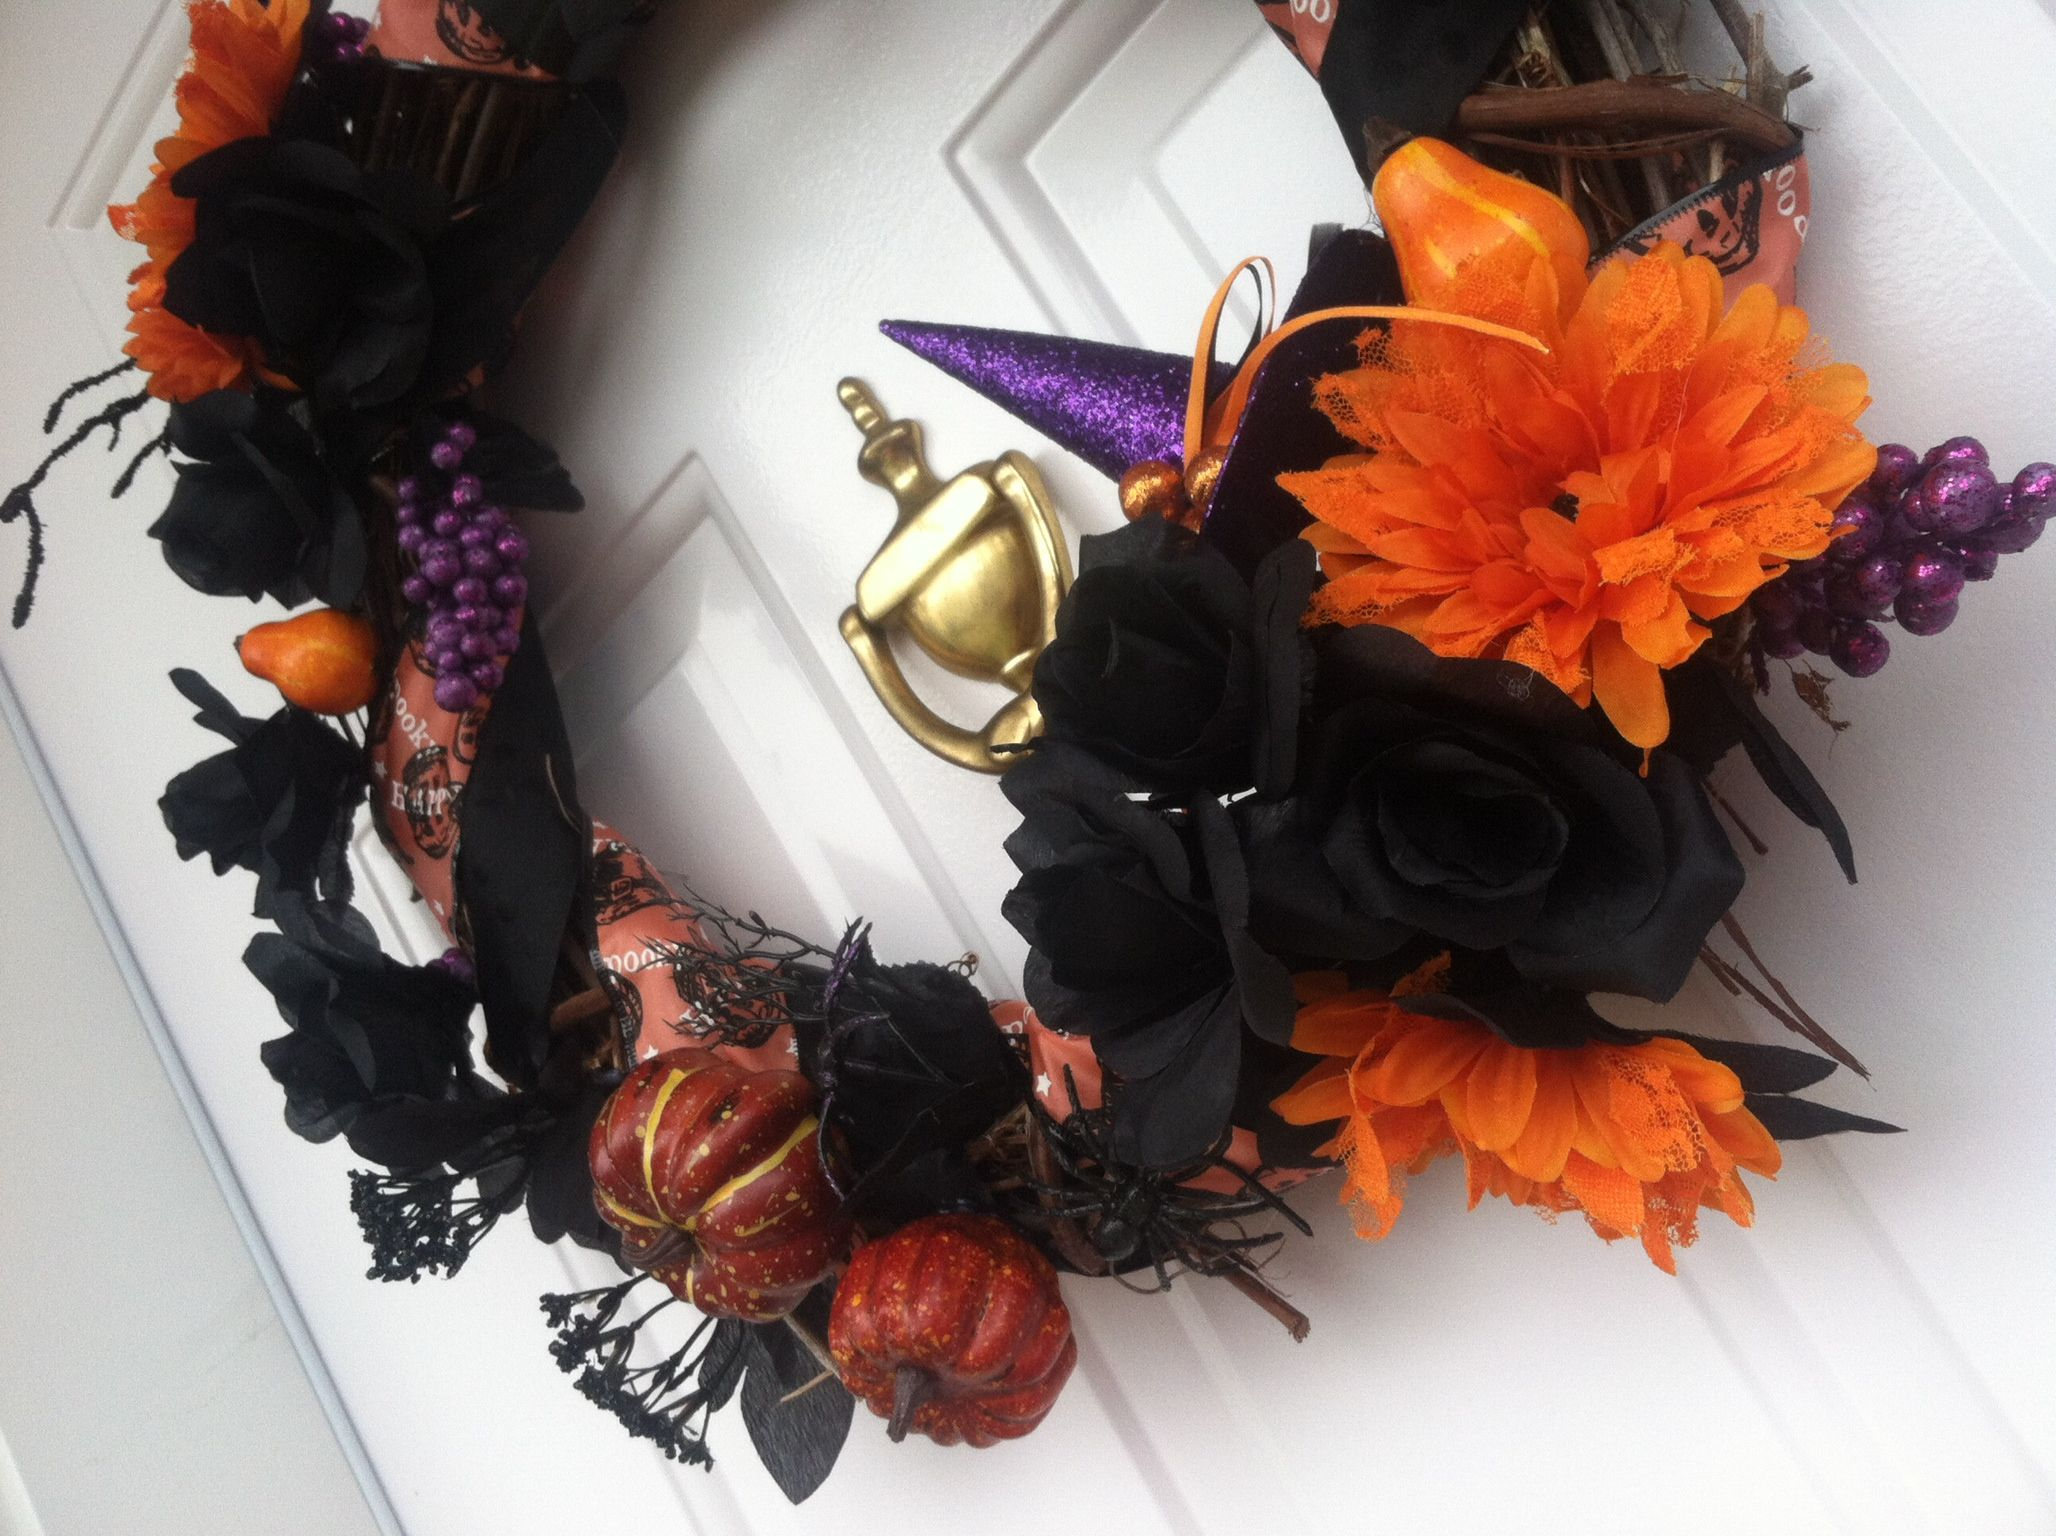 Samhain Wreaths, So Much Fun To Make